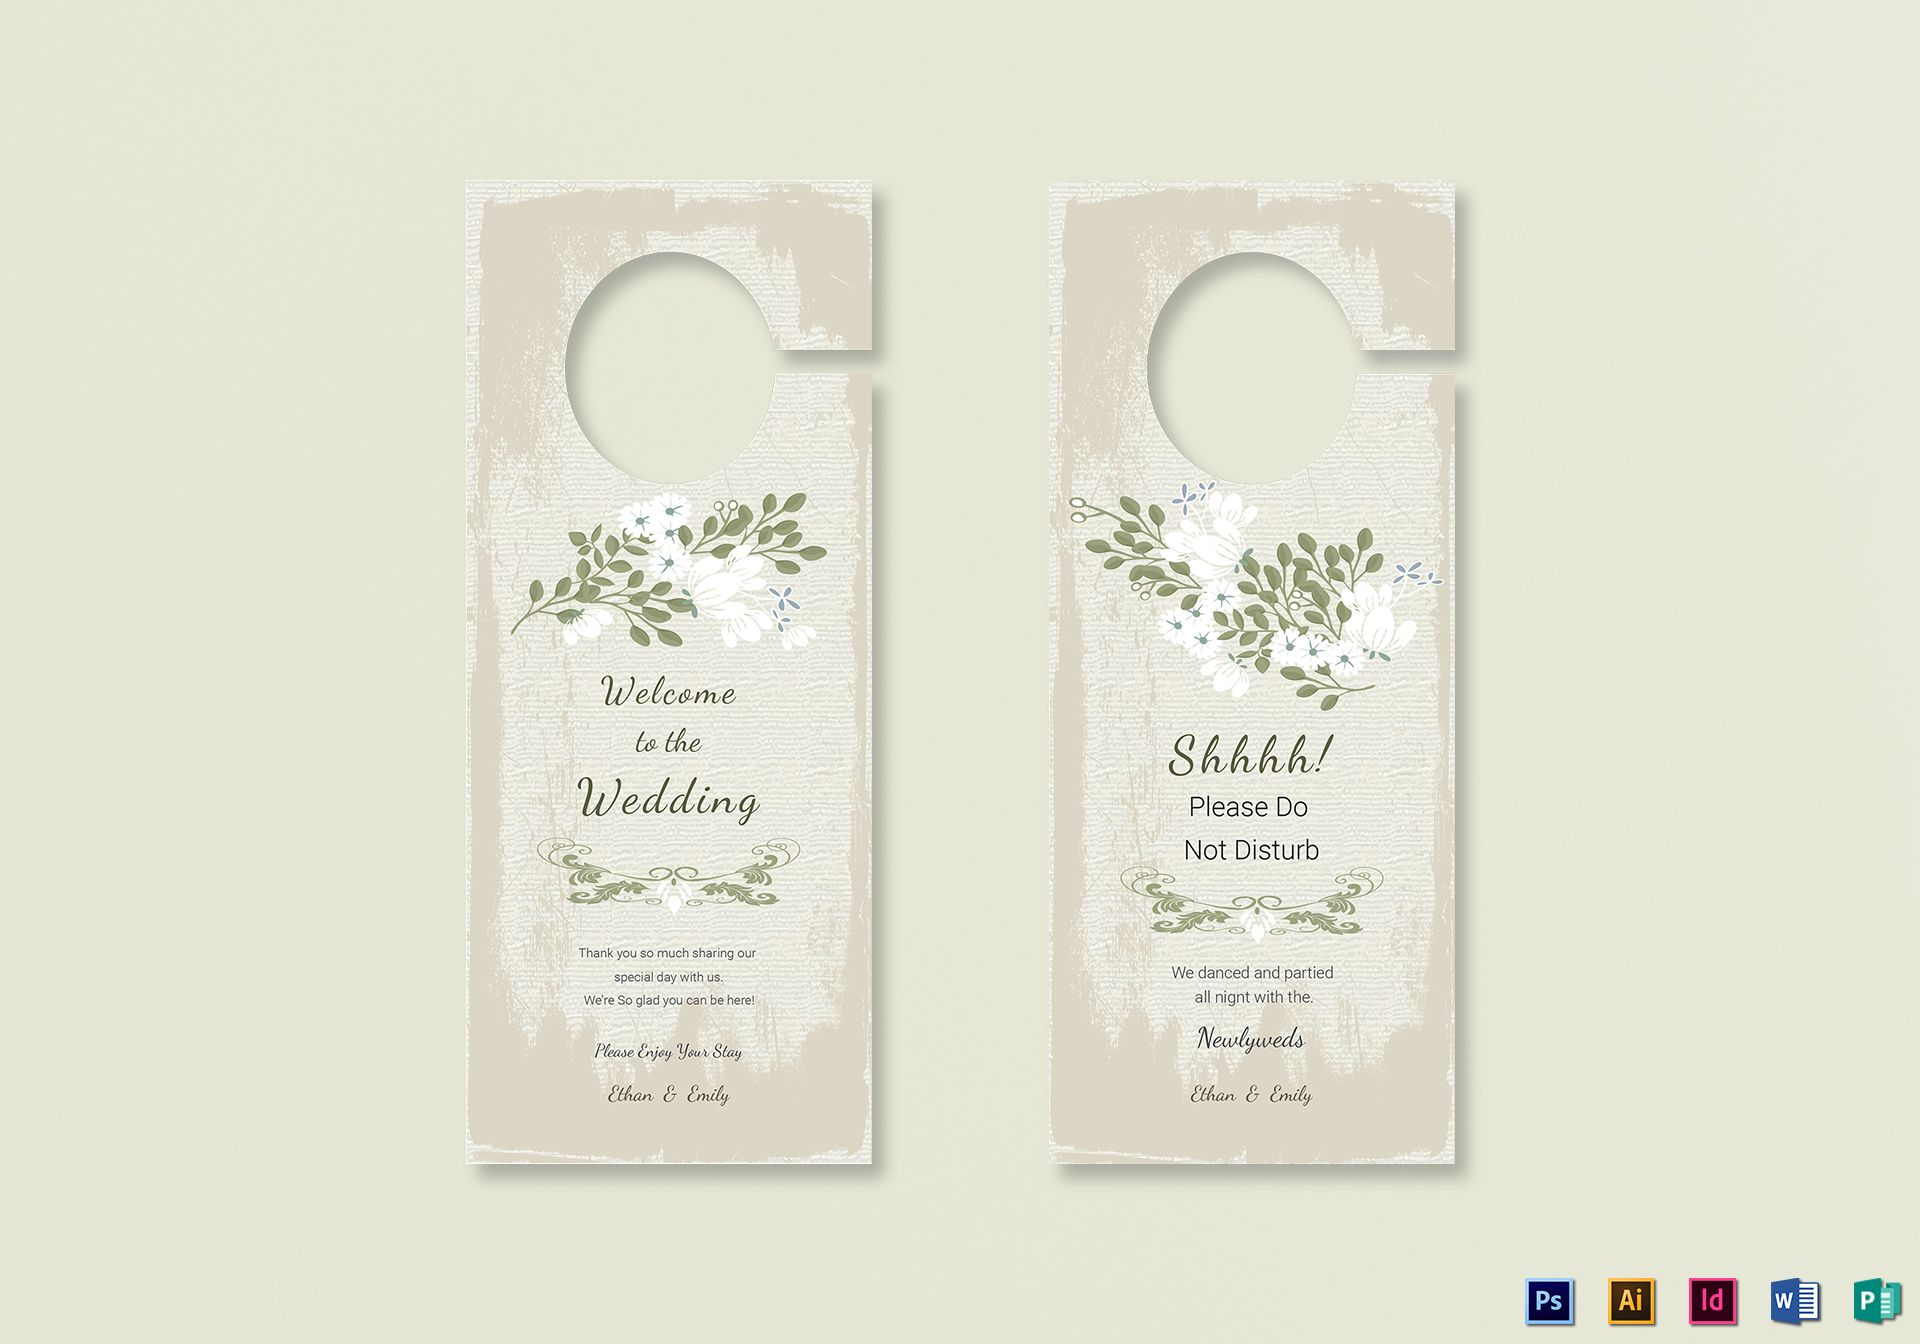 Wedding Door Hanger Template | Vintage Wedding Door Hanger Template In Psd Word Publisher